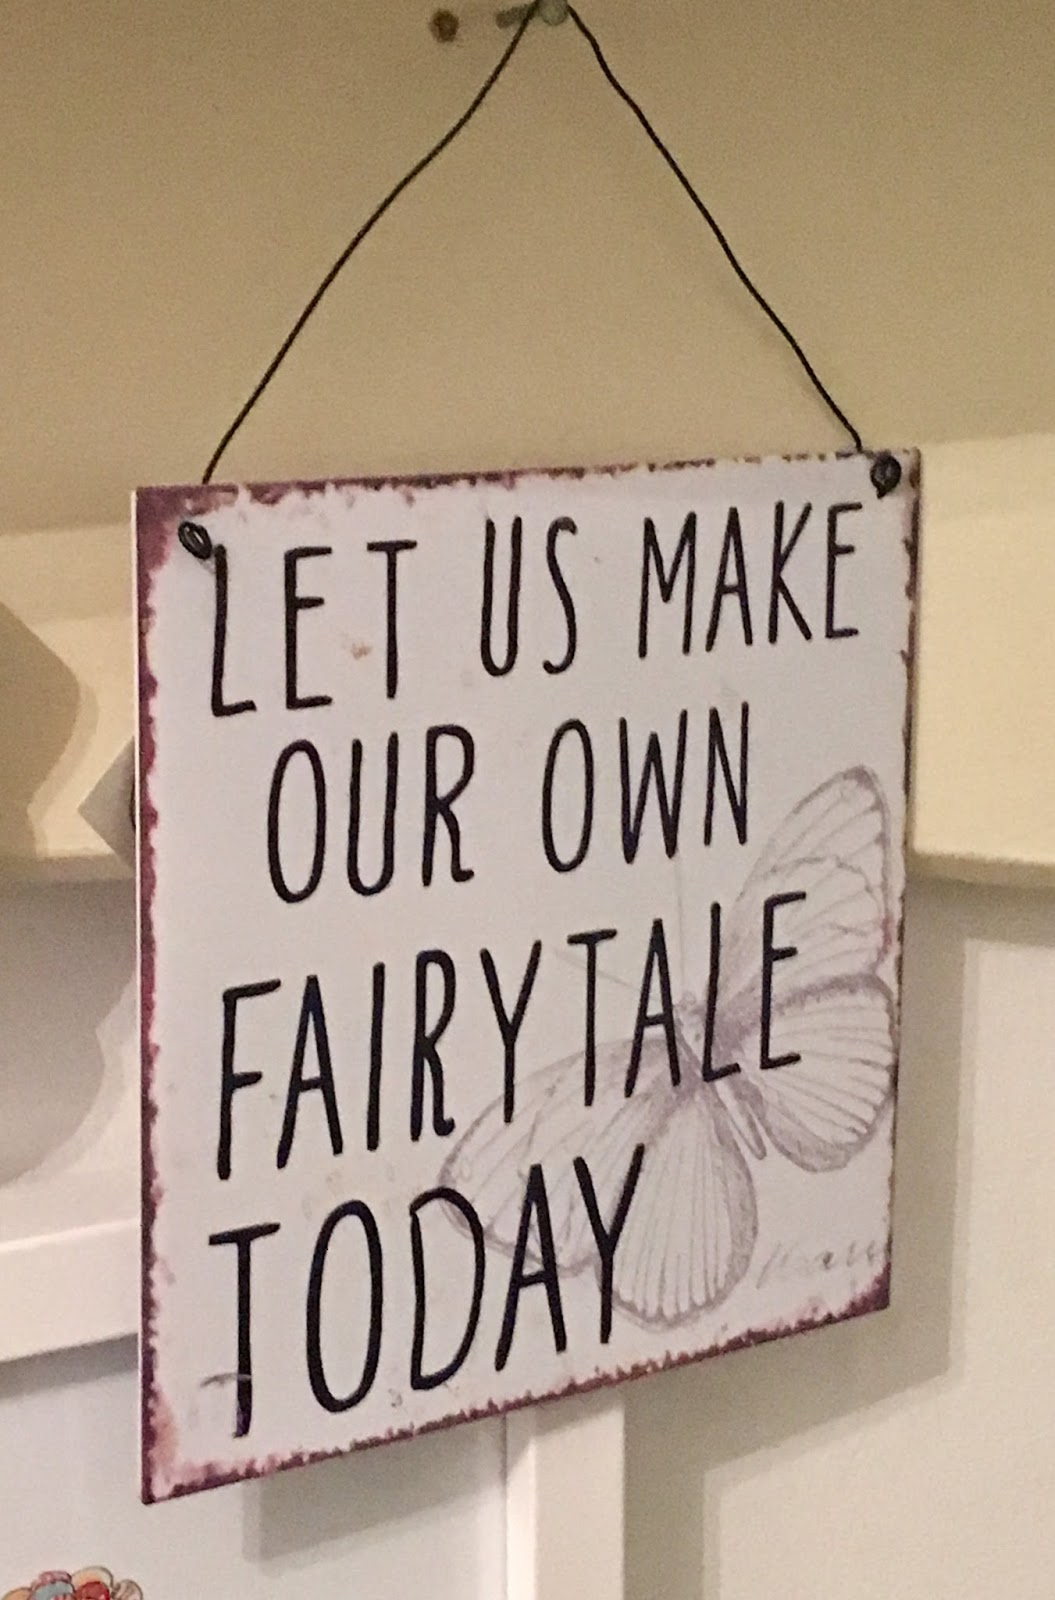 Let's make our own fairy tale today